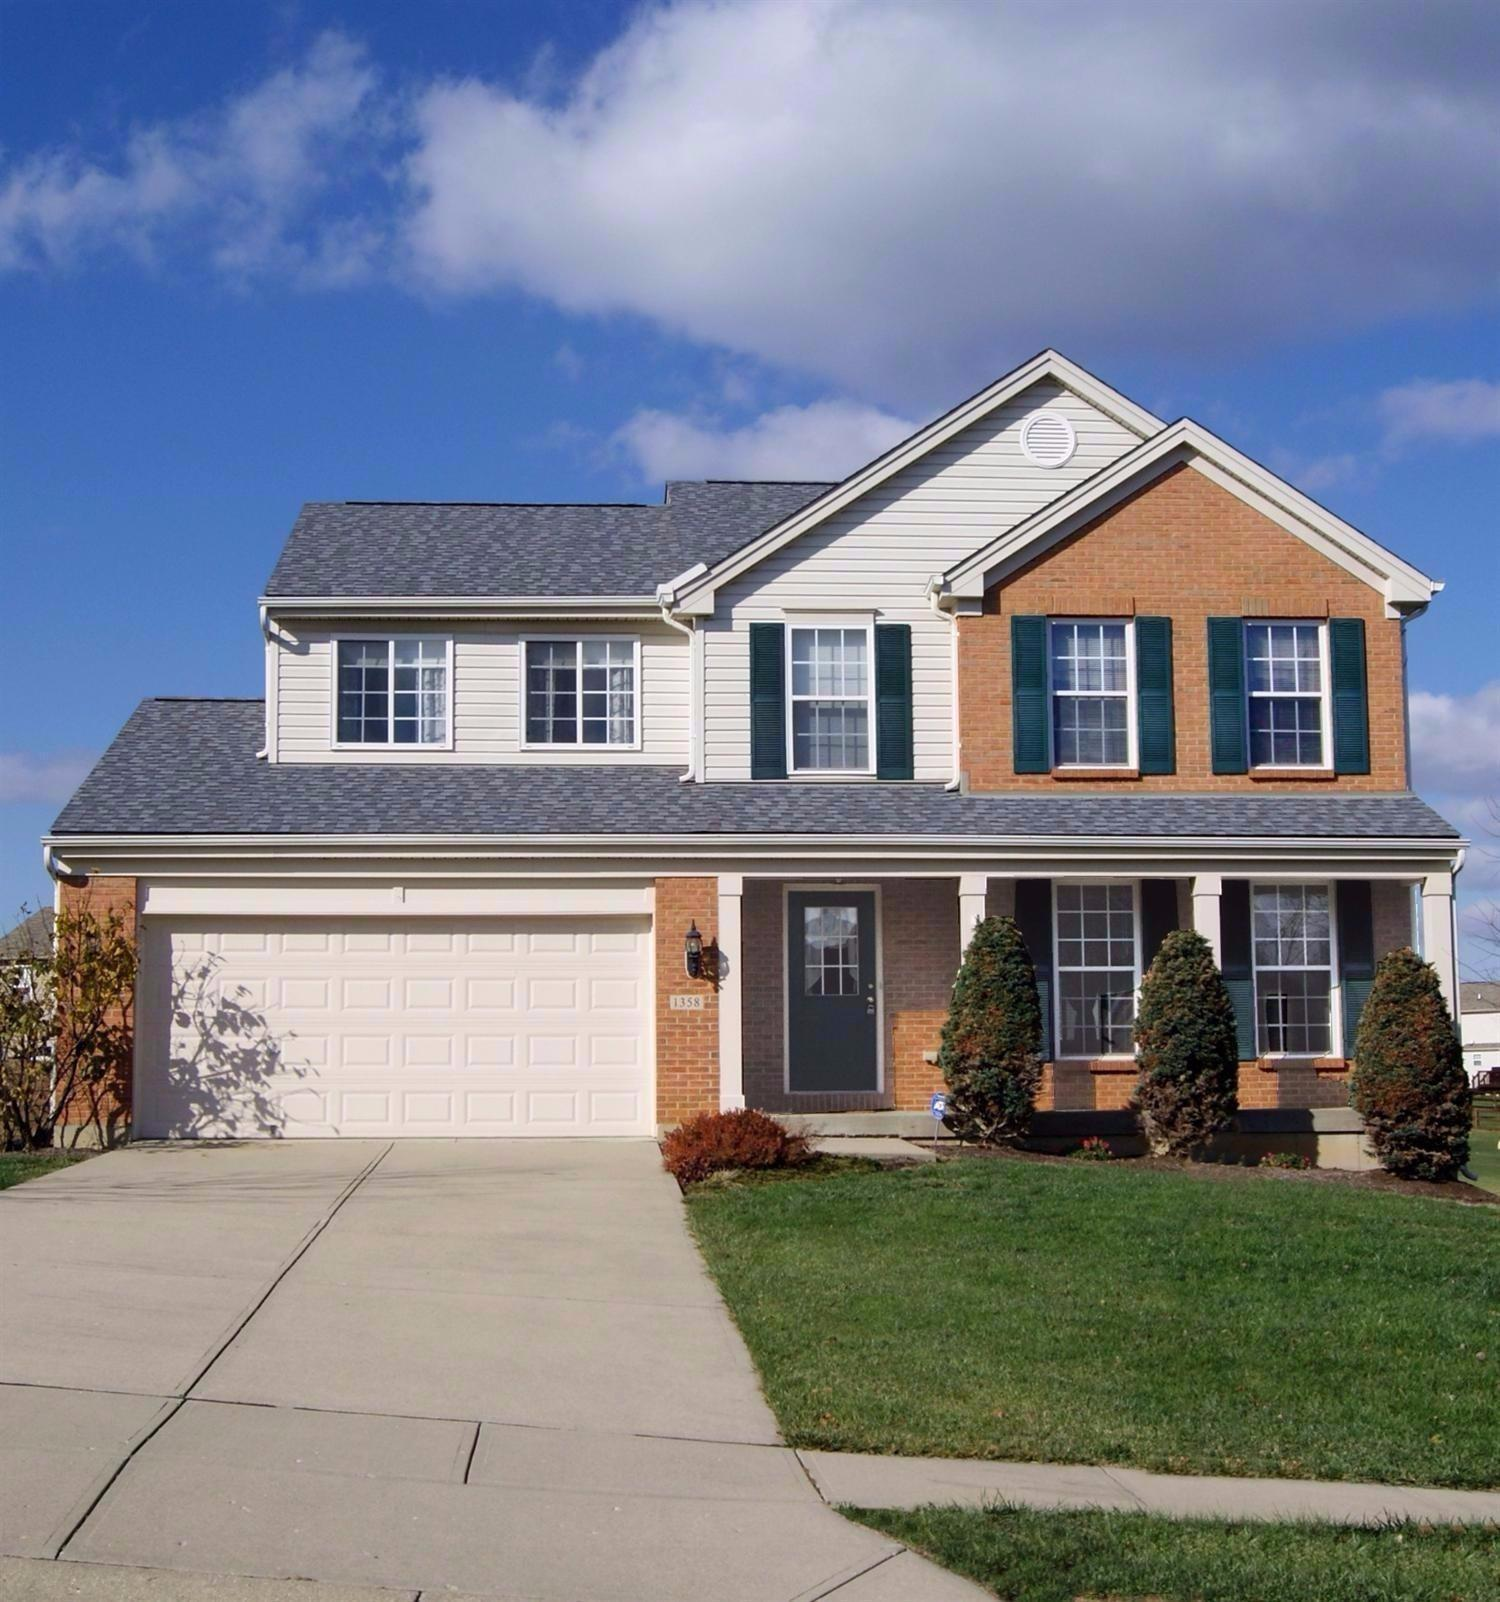 Photo 1 for 1358 Cairns Ct Independence, KY 41051